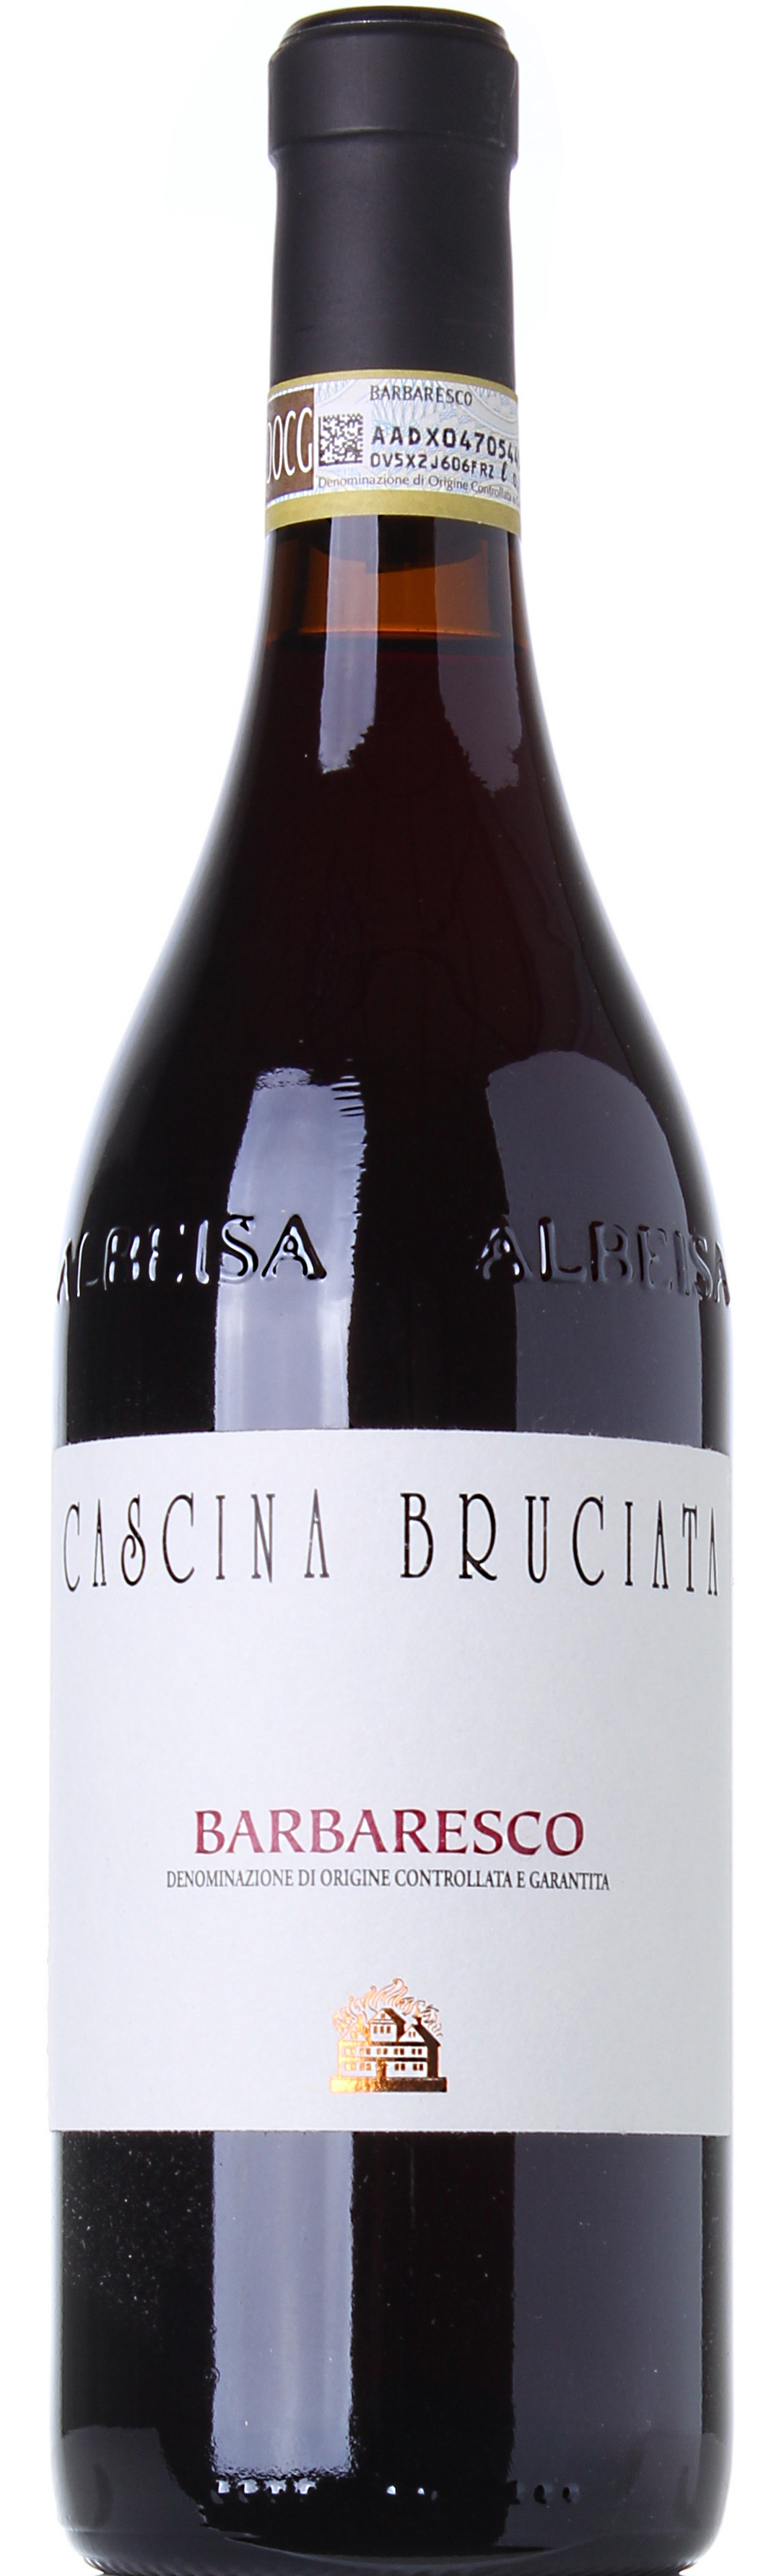 CASCINA BRUCIATA BARBARESCO 2009